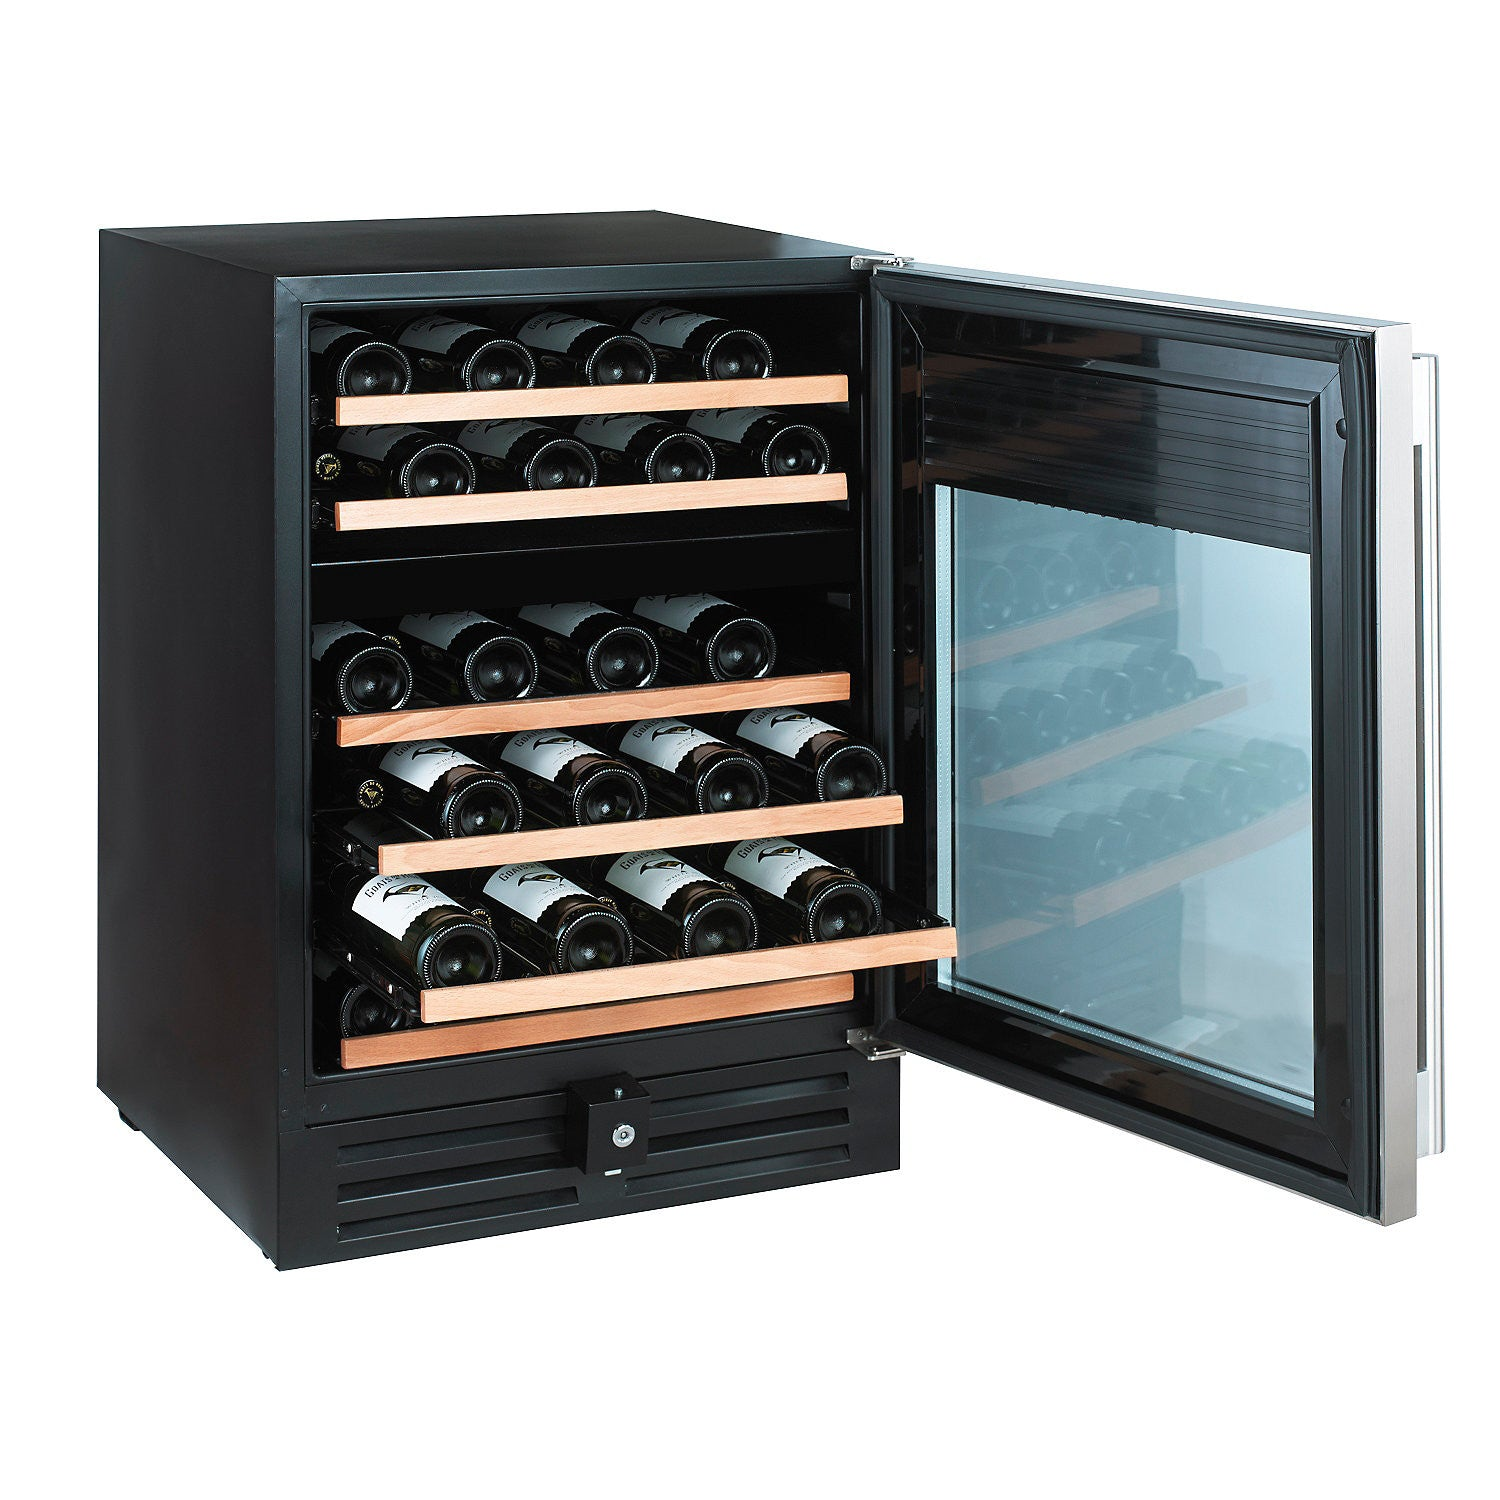 ... Nu0027FINITY PRO HDX 46 Dual Zone Wine Cellar (Stainless Steel Door) ...  sc 1 st  Buy Wine Coolers & Nu0027FINITY PRO HDX 46 Dual Zone Wine Cellar (Stainless Steel Door ...